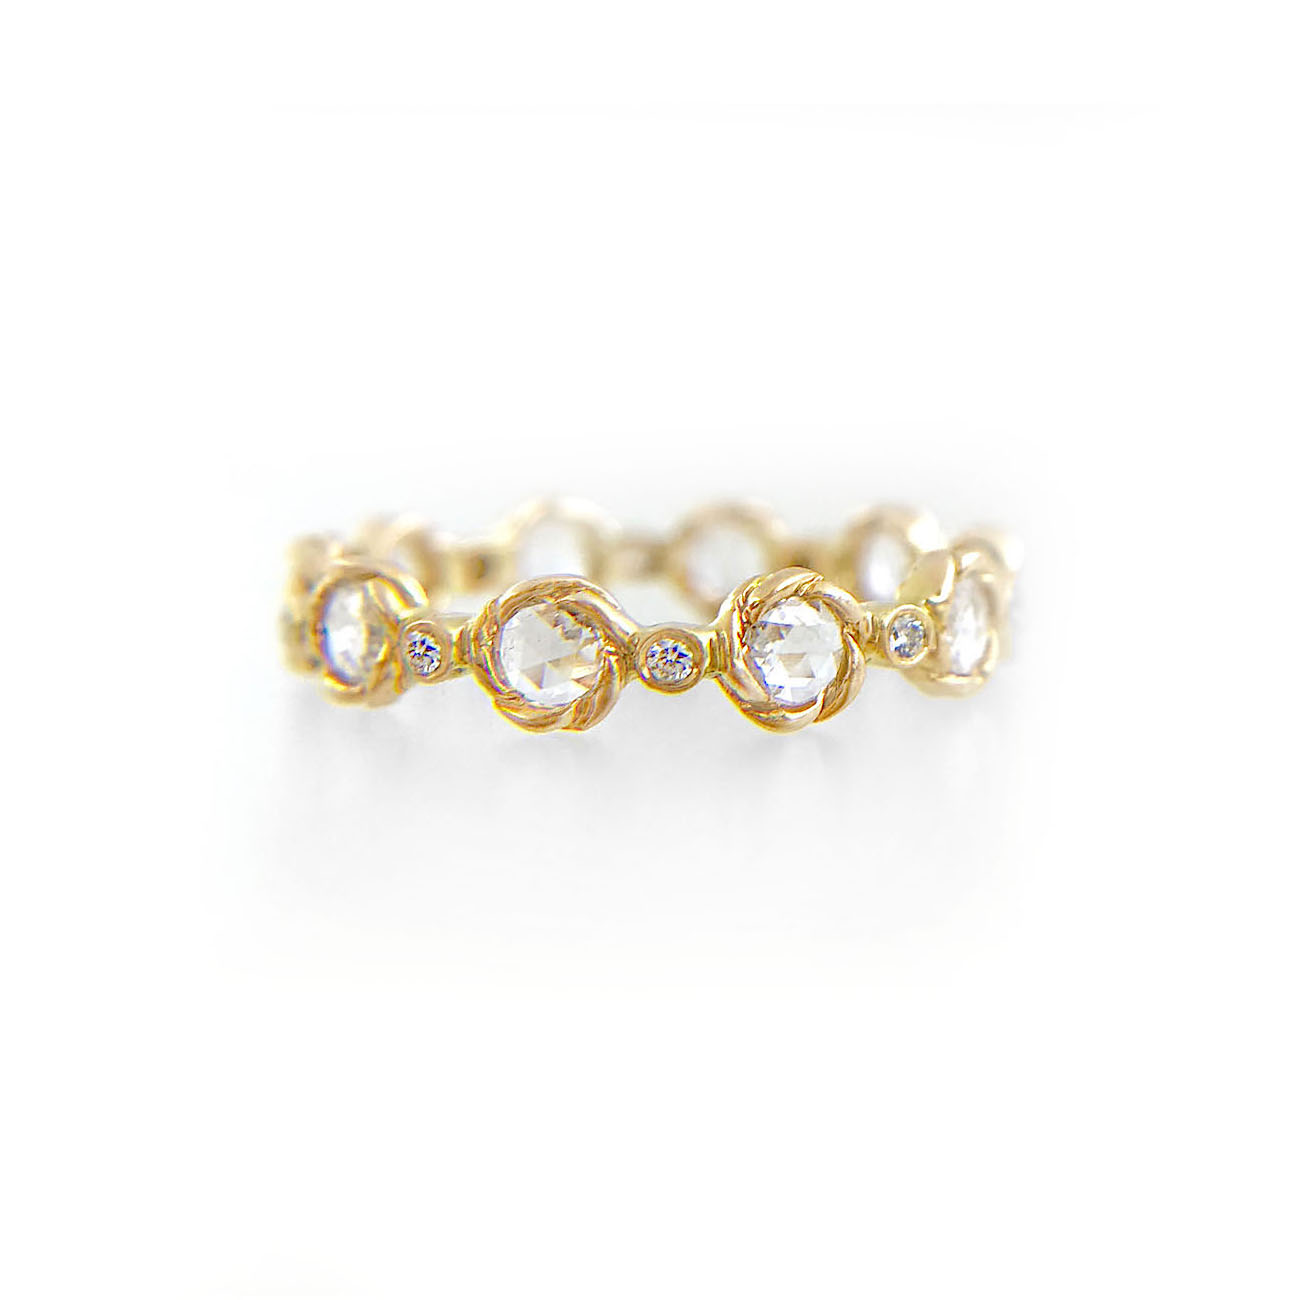 21-Signature-Twist-Bezel-4mm-Rose-Cut-Diamond-Eternity-Gold-Ring-14k-18k-JeweLyrie_3382-1